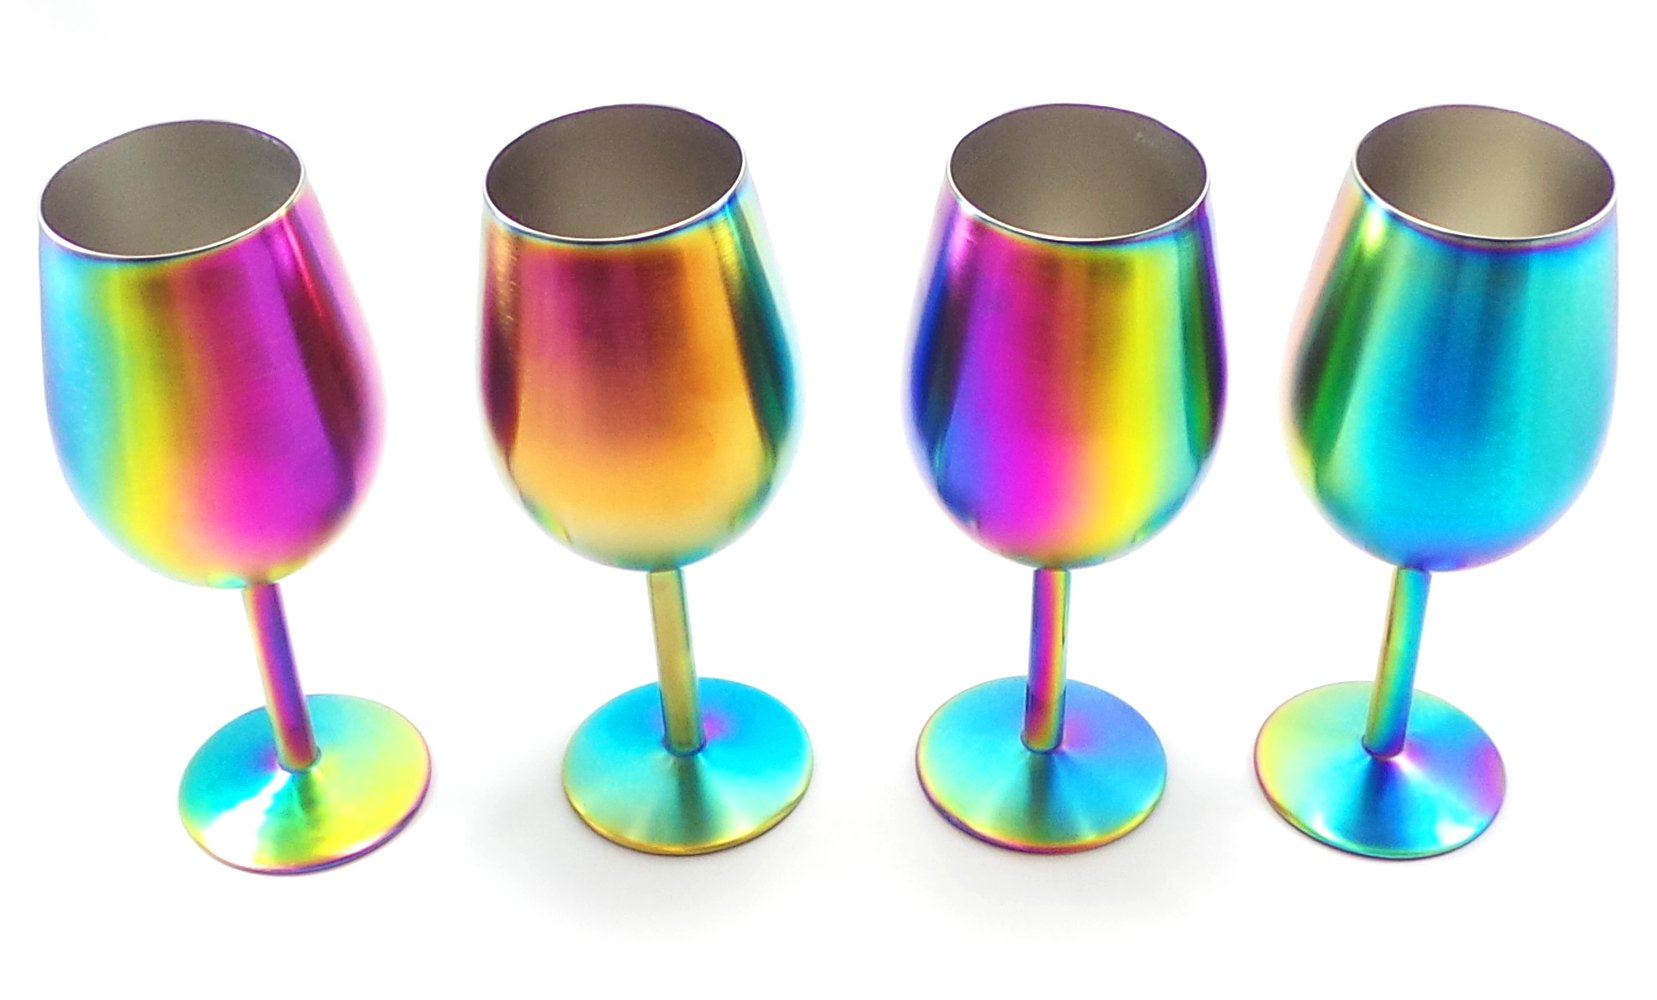 Shatterproof Stainless Steel Wine Glasses (Set of 4), Titanium Rainbow Colored Finish, Lids Included, Long Stemmed by Great Spirit Wares (Image #2)